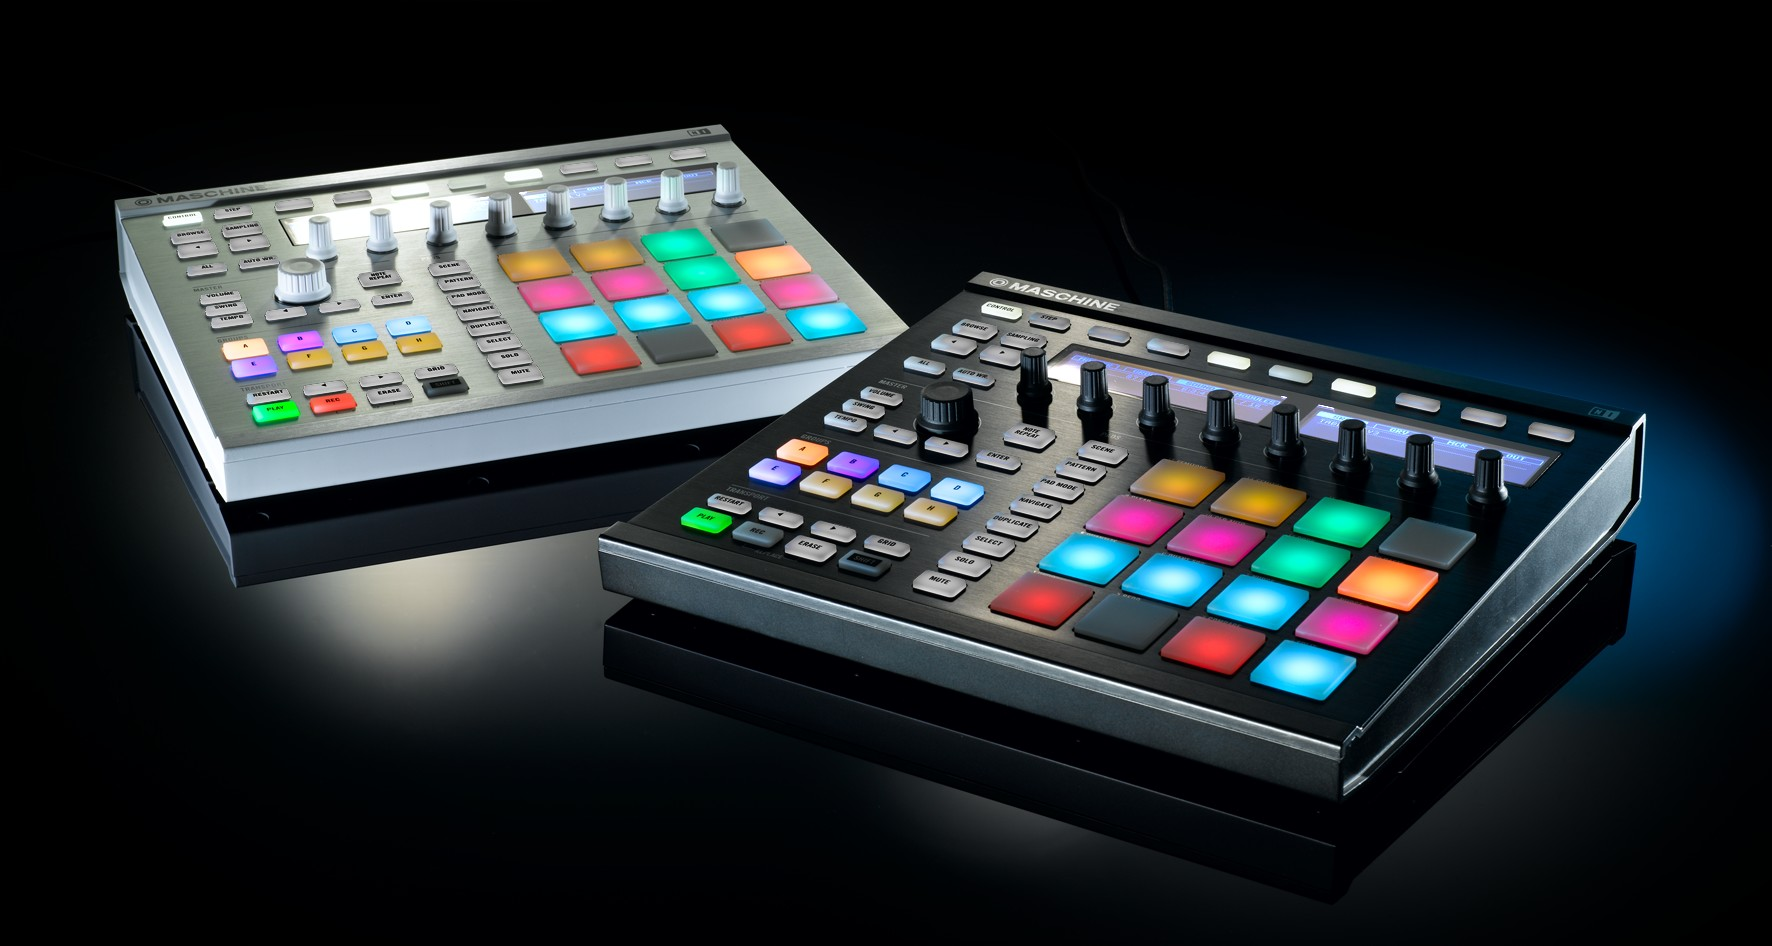 native instruments maschine mk2 version 1 8 major overhaul with new updates to hardware and. Black Bedroom Furniture Sets. Home Design Ideas